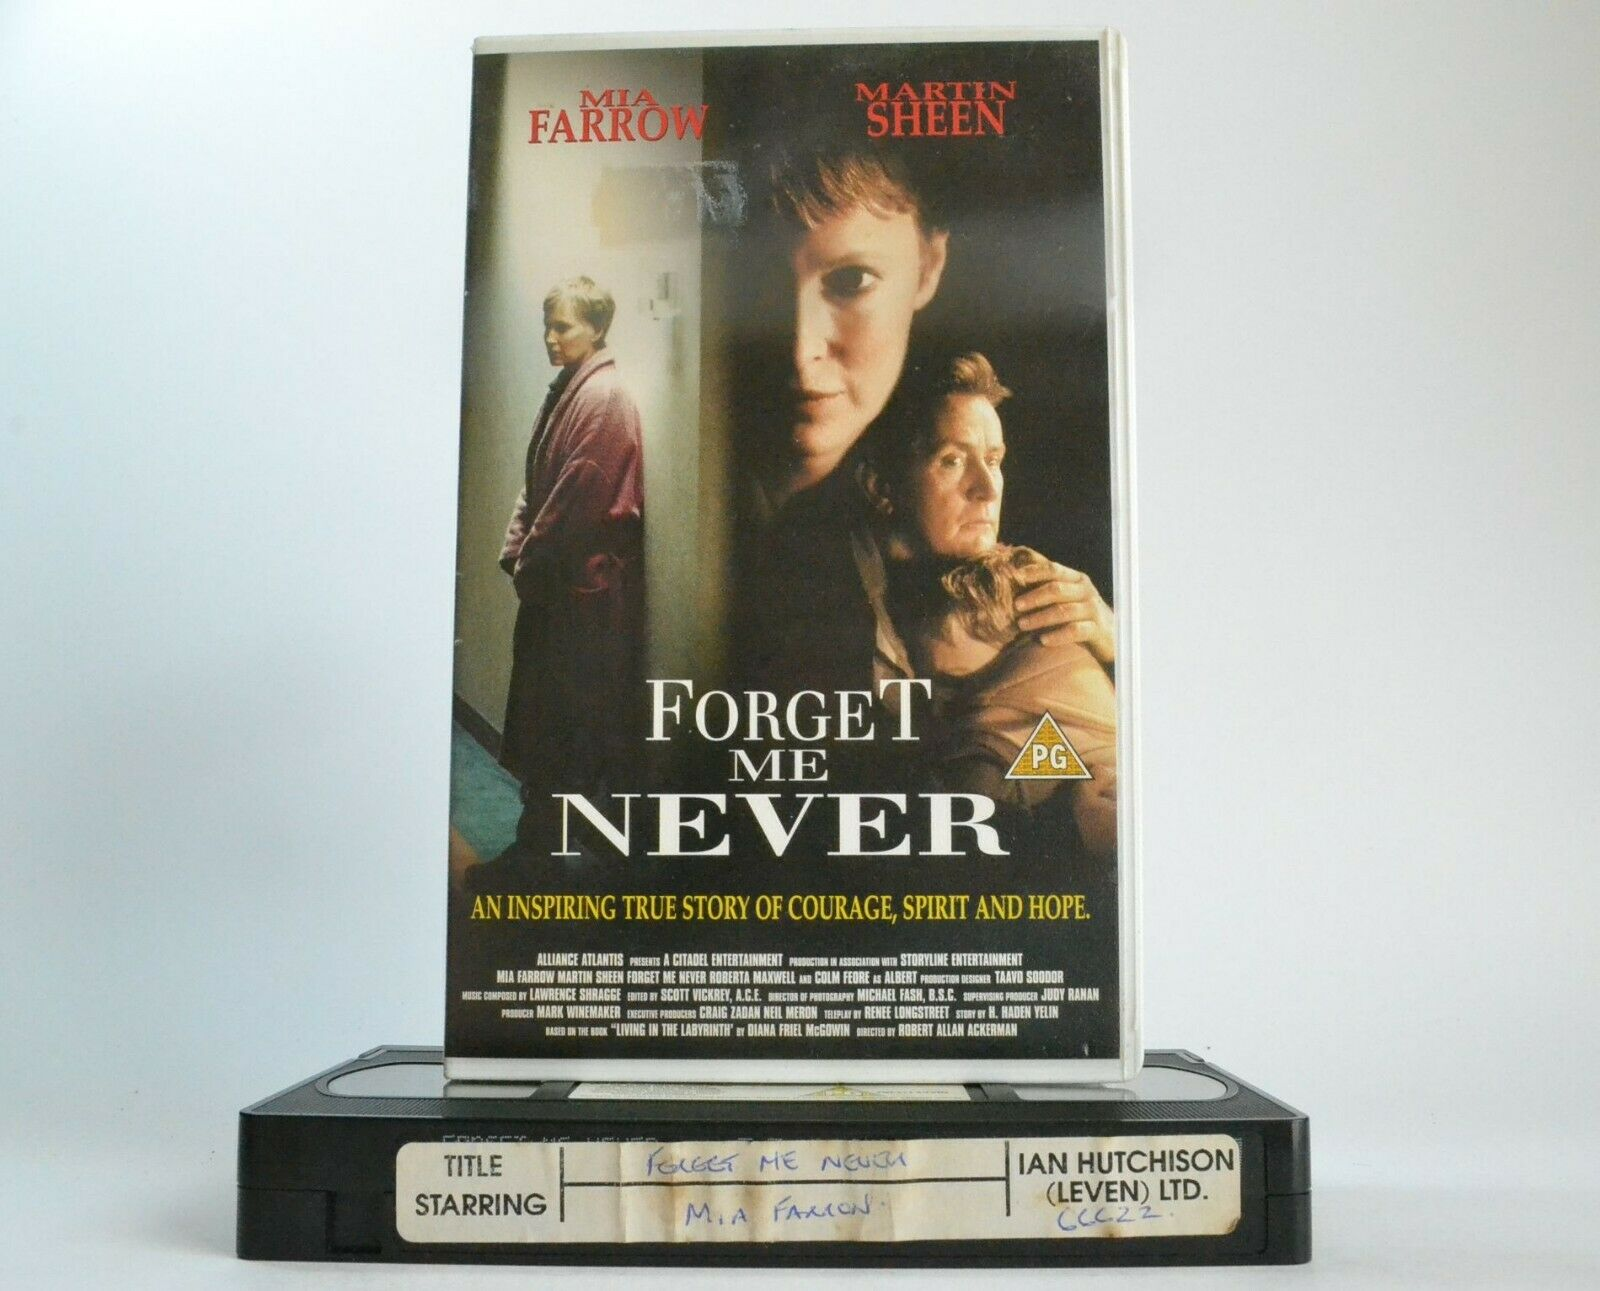 Box, Drama, Forget, Forget Me Never, Large, Me, Mia, Pal, Sheen, TV, VHS